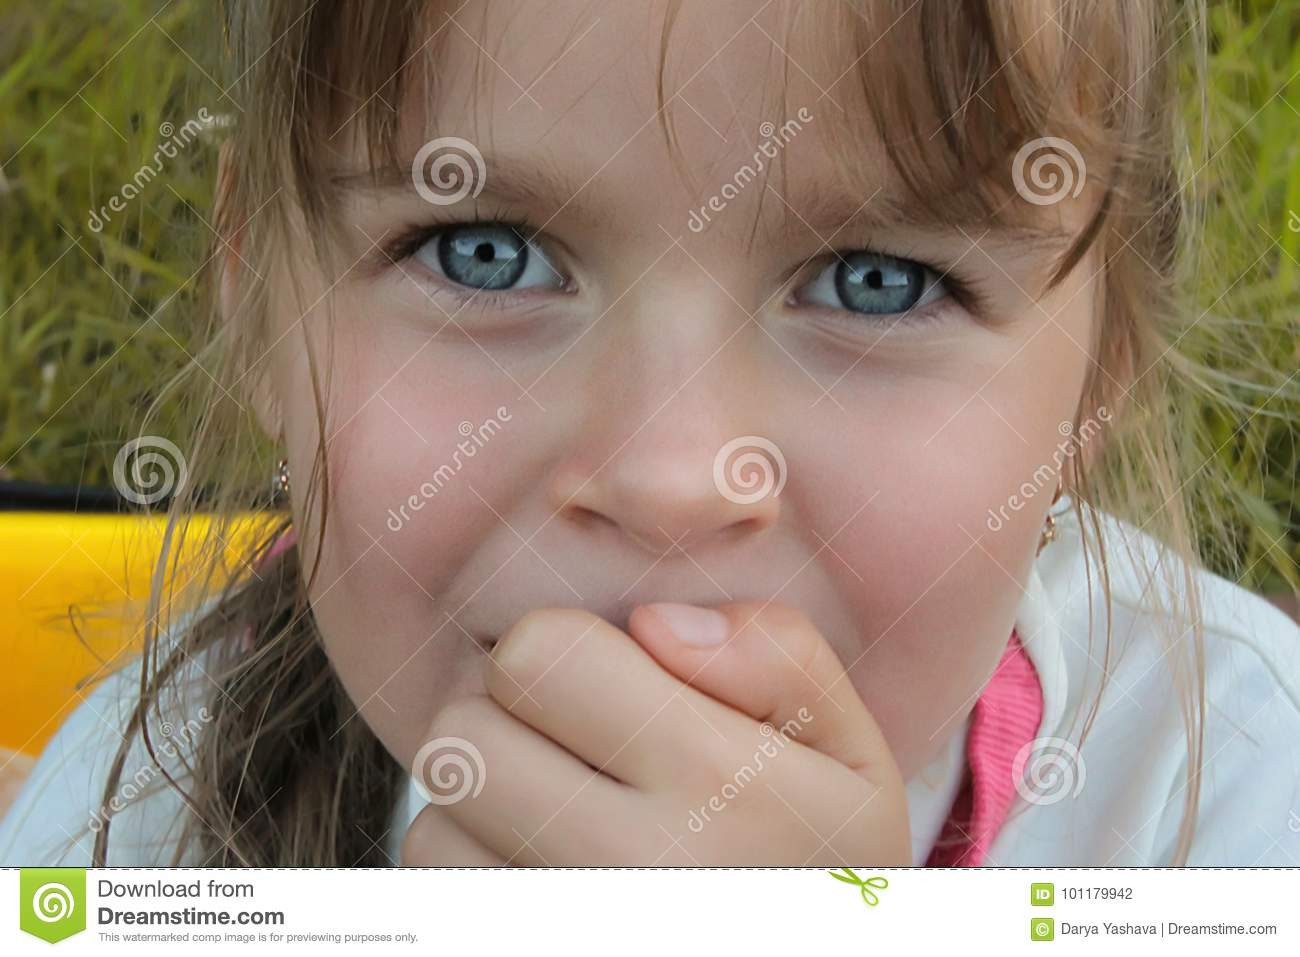 A cute European/Caucasian little girl with big with blue expressive eyes looking directly into the camera. Close-up